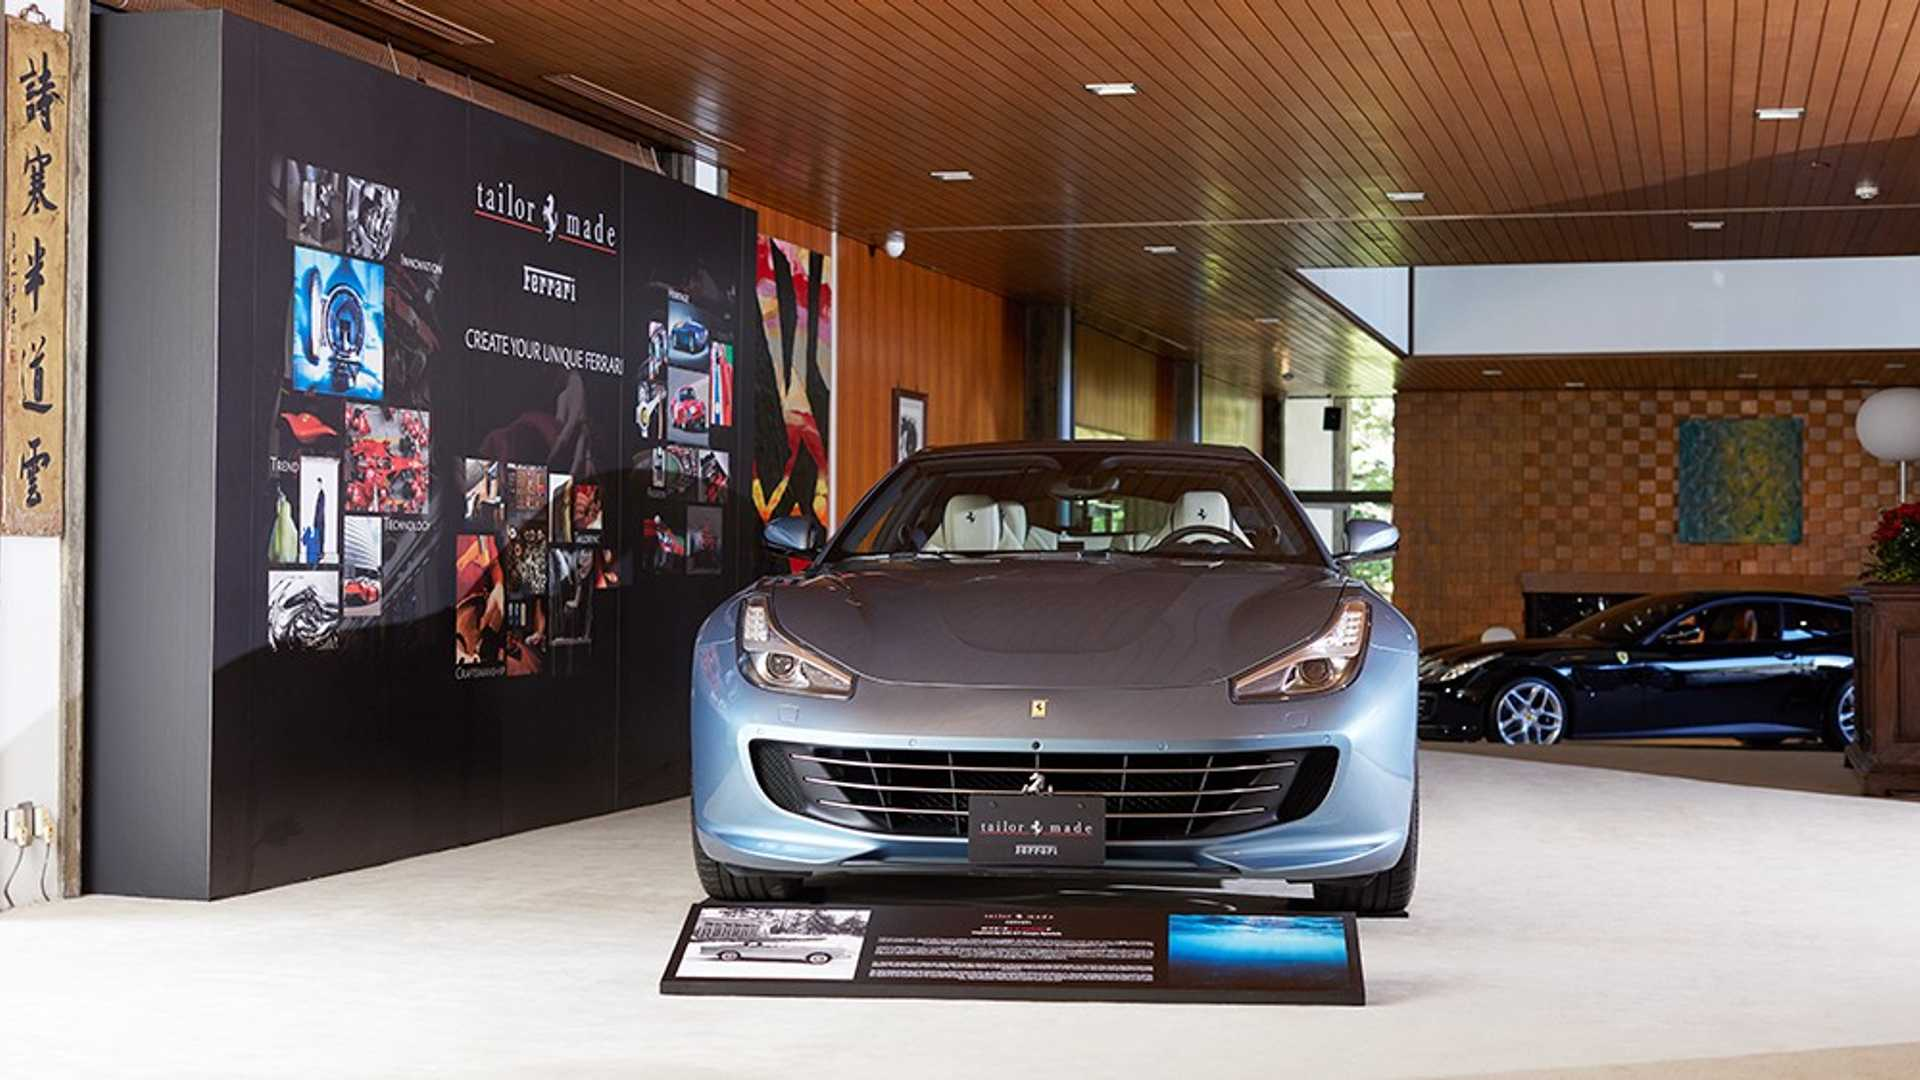 ferrari-tailor-made-event-in-japan (11)